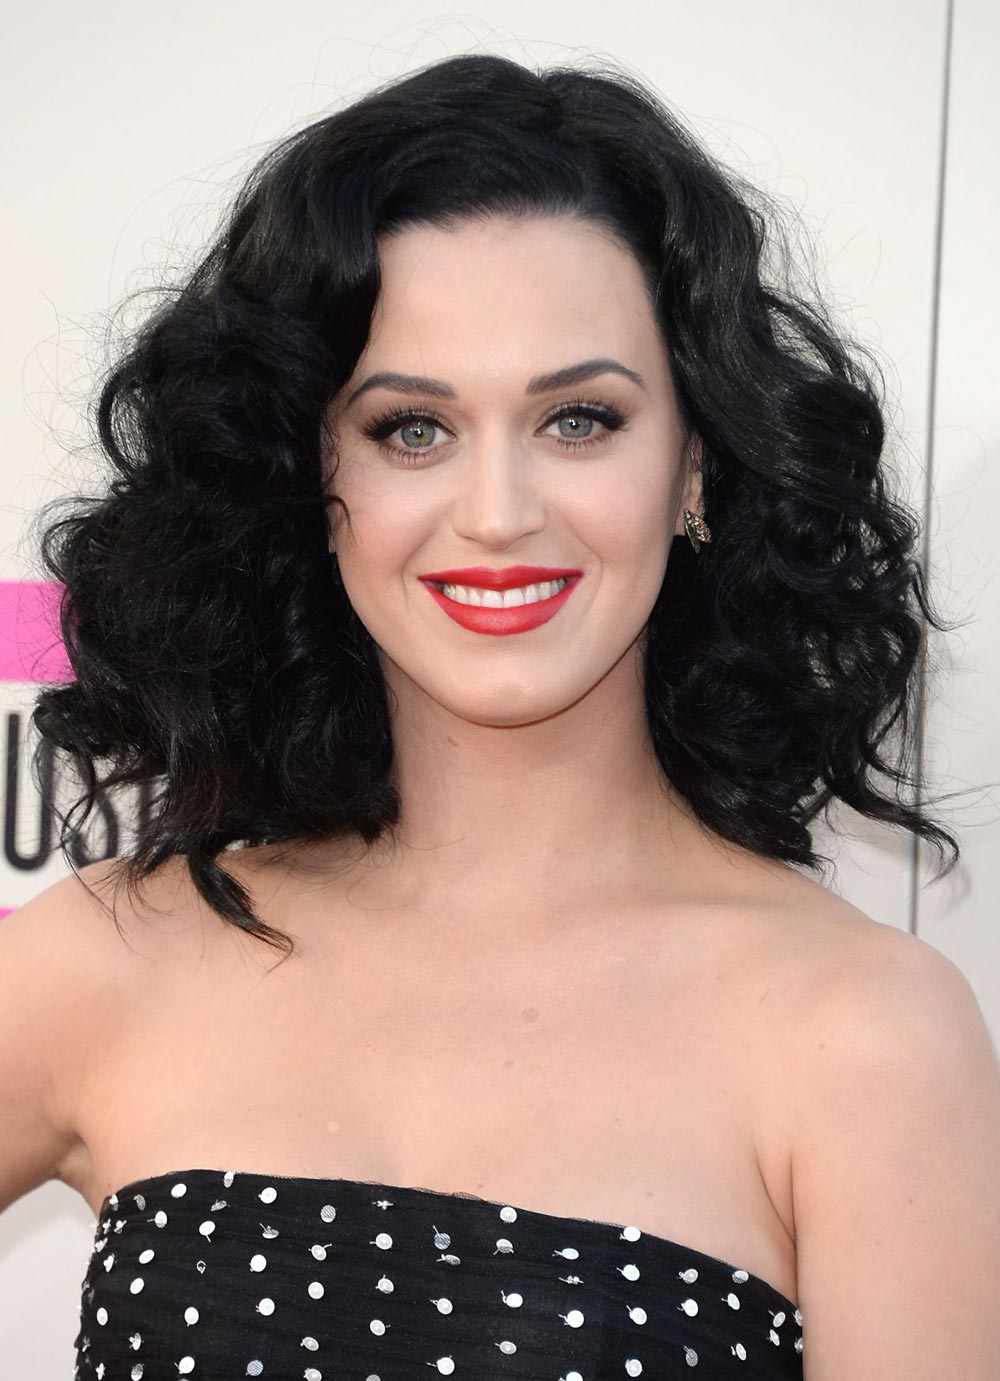 Katy Perry's Makeup Look at 2013 AMAs